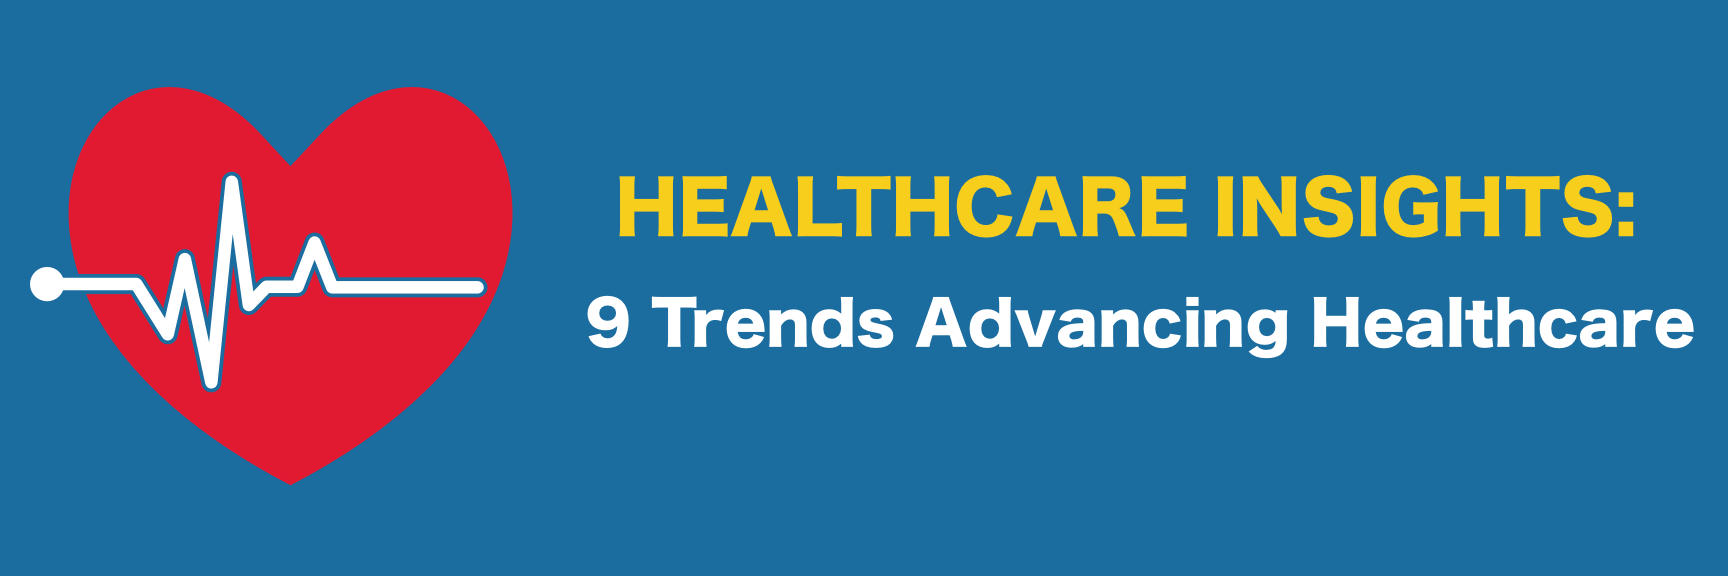 9 healthcare trends advancing healthcare